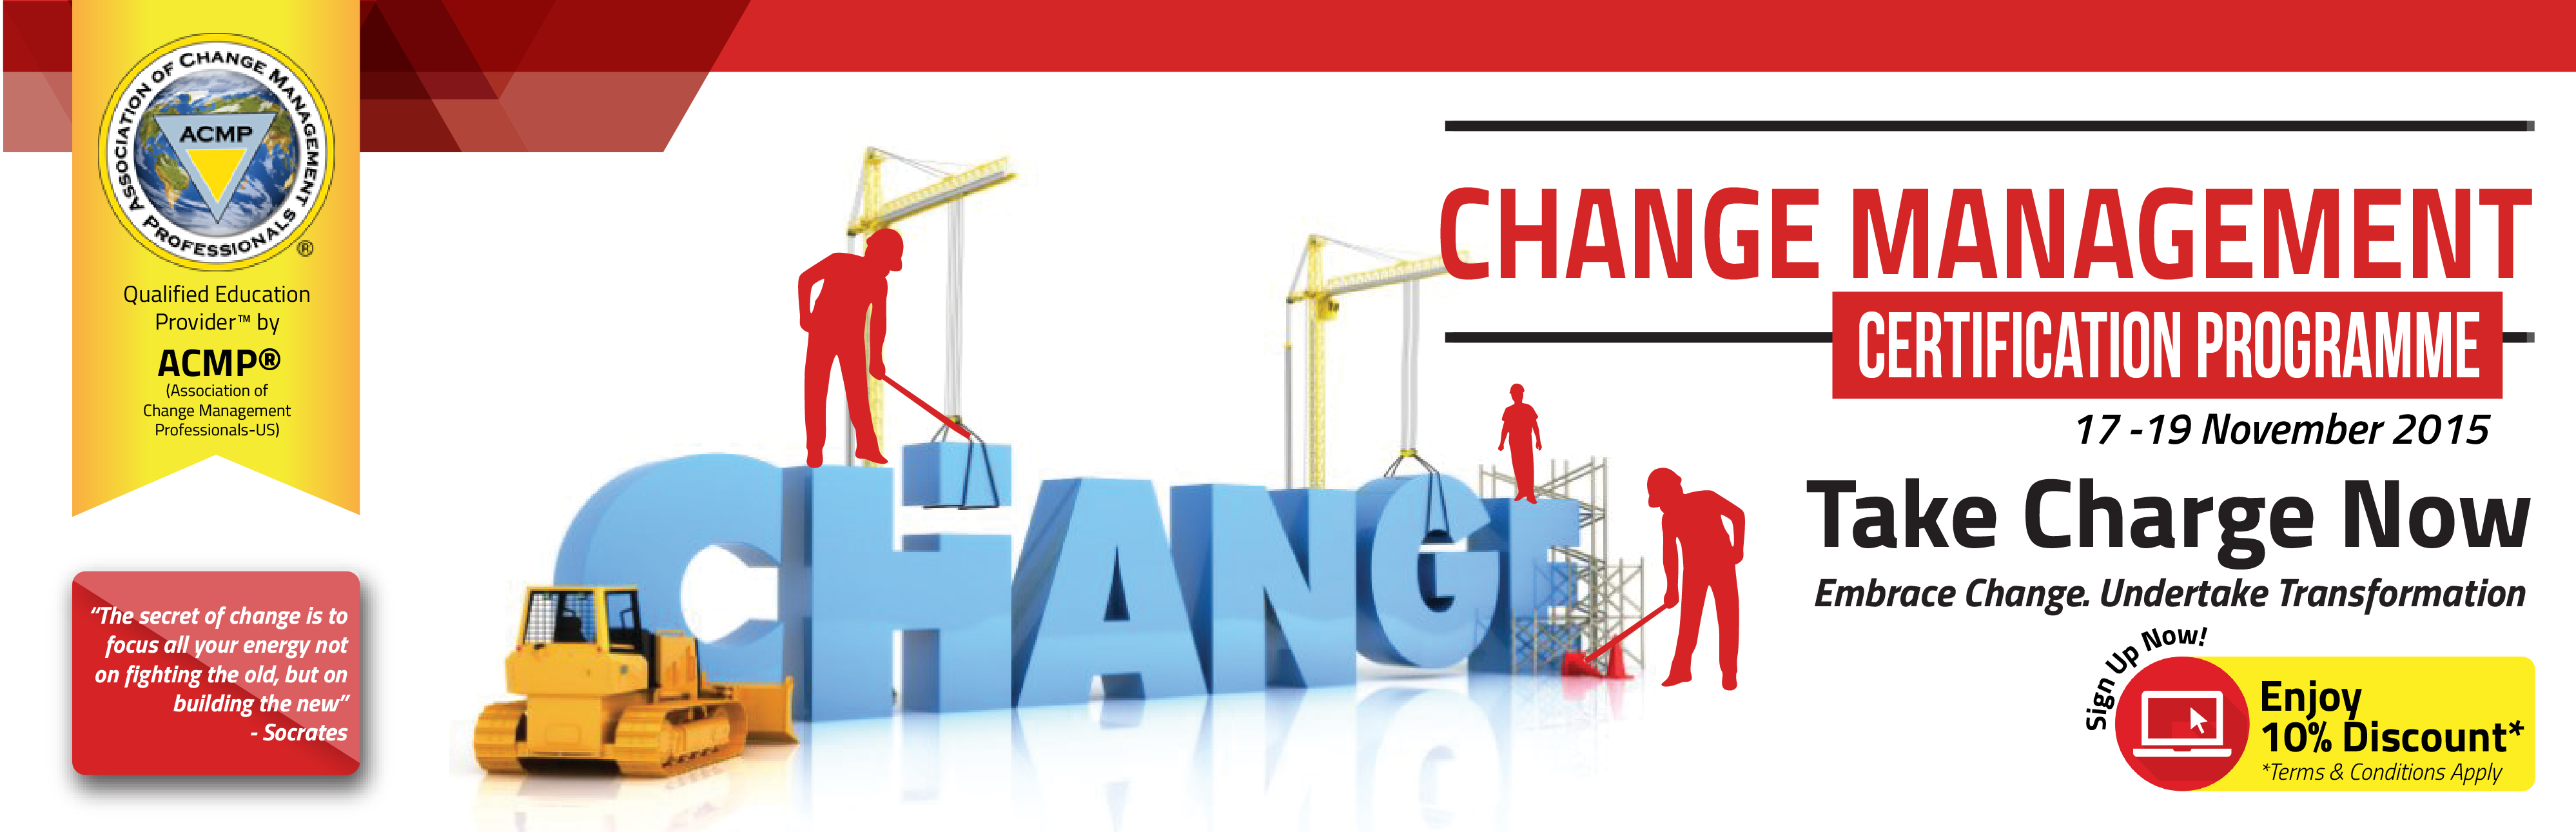 Change Management Certification Programme